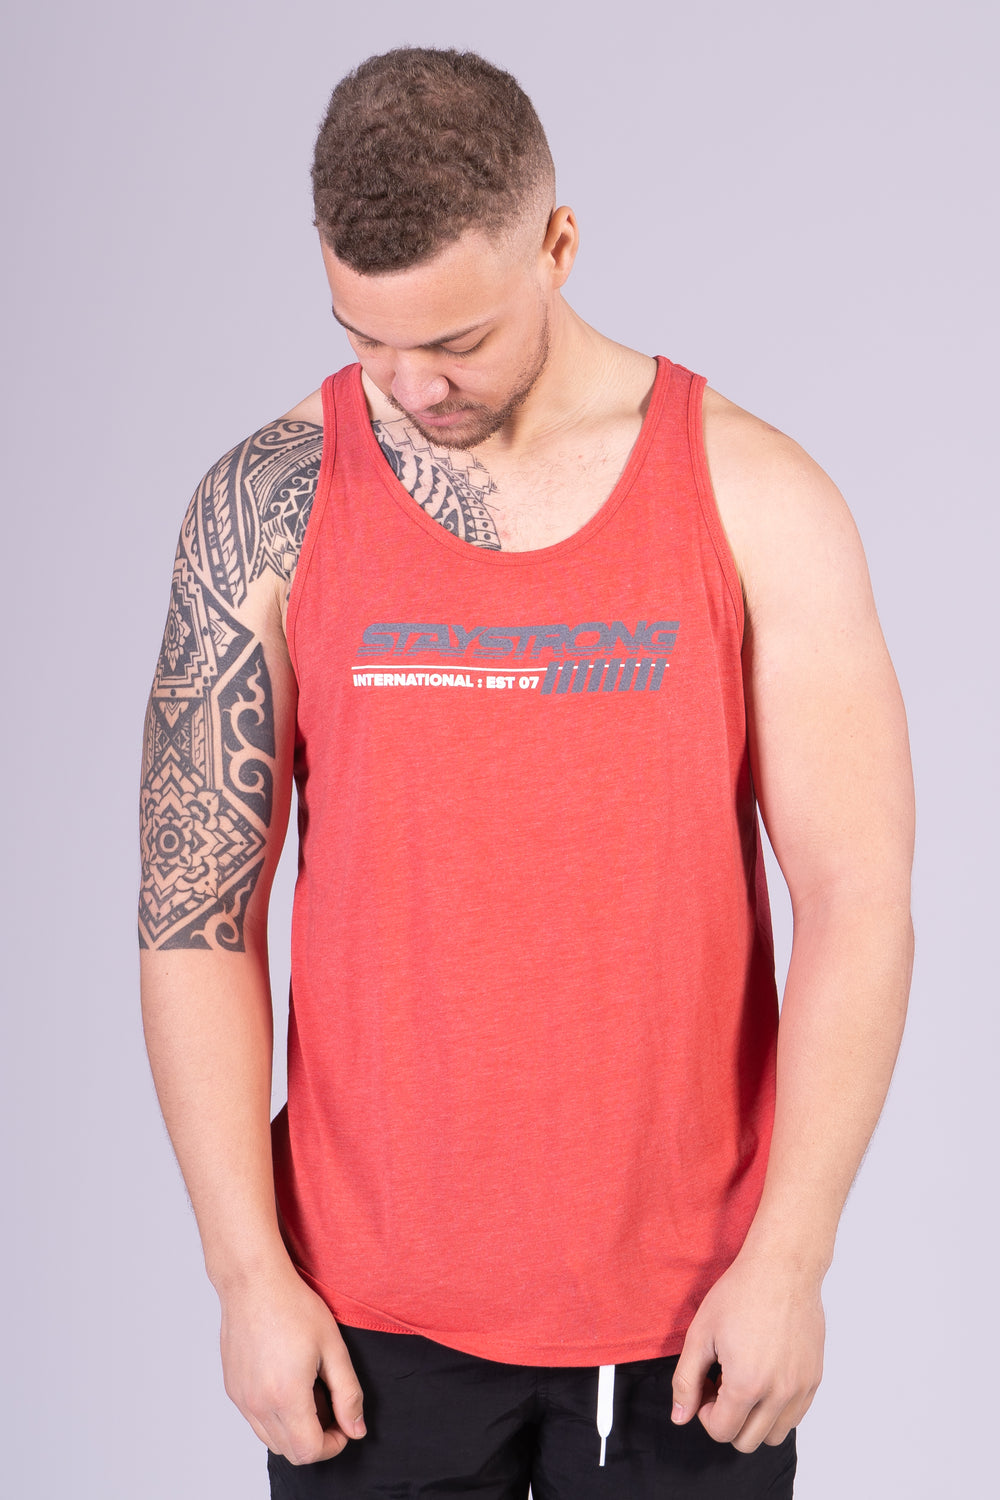 INTERNATIONAL / VEST / RED